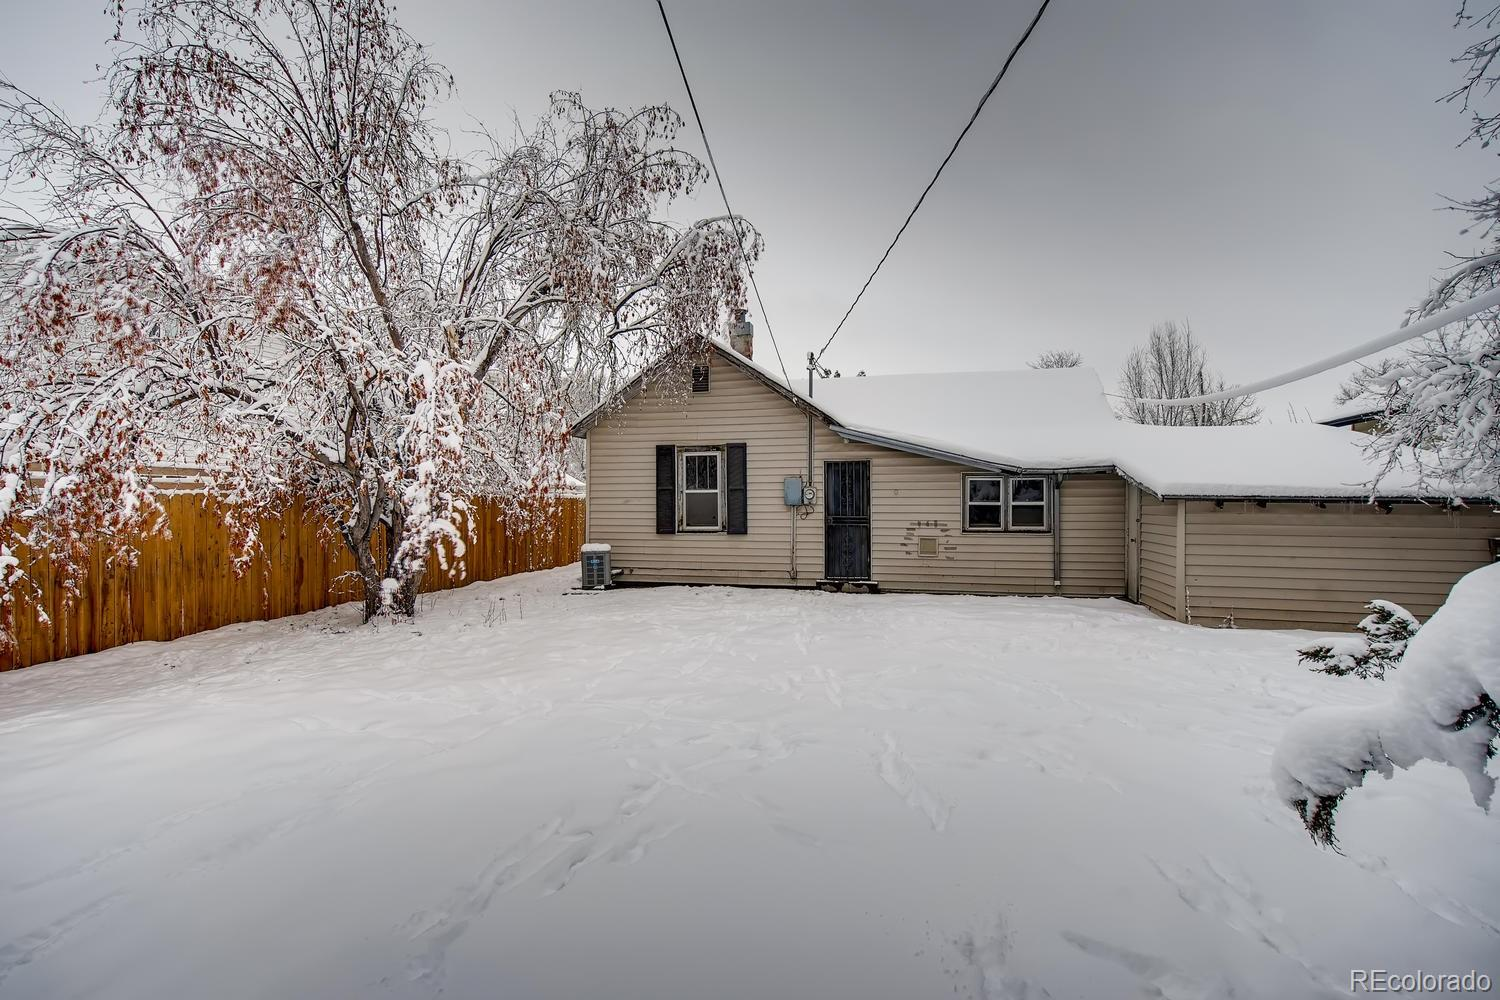 MLS# 4053329 - 26 - 145 N 5th Avenue, Brighton, CO 80601